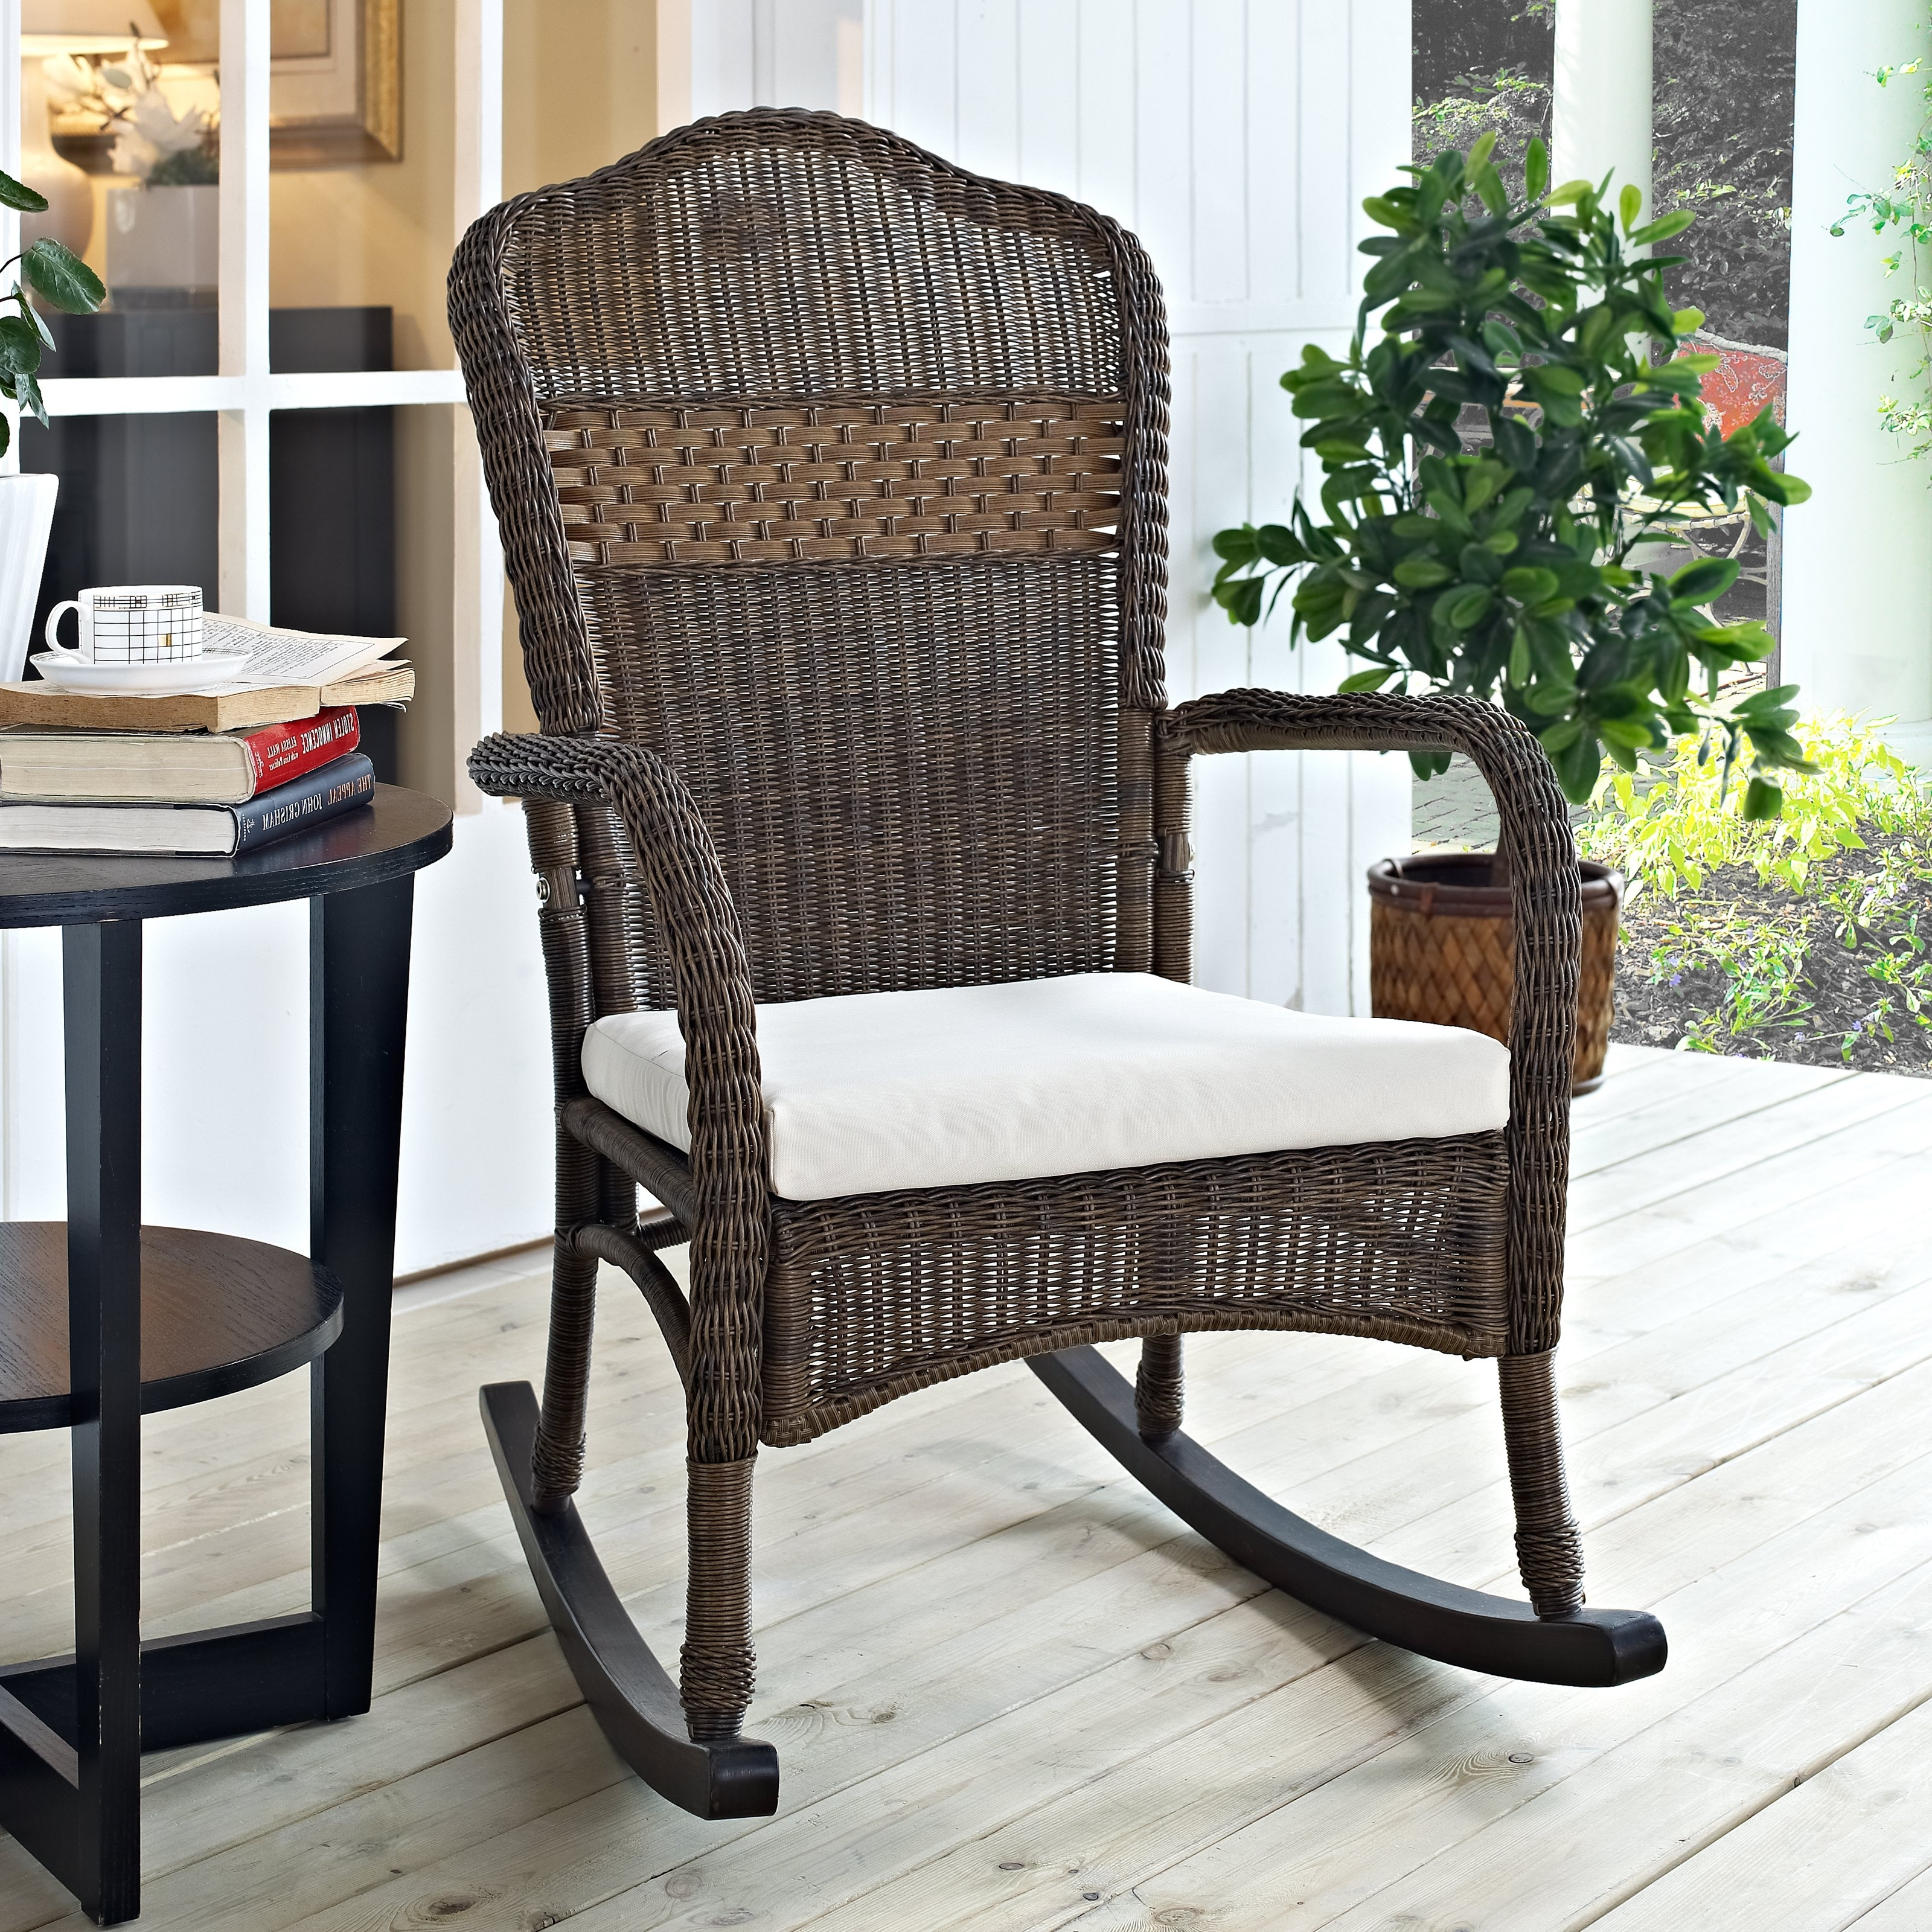 Brown Patio Rocking Chairs Regarding Well Known Wicker Glider Rocking Chair – Wicker Rocking Chair As Real Exotic (View 8 of 20)